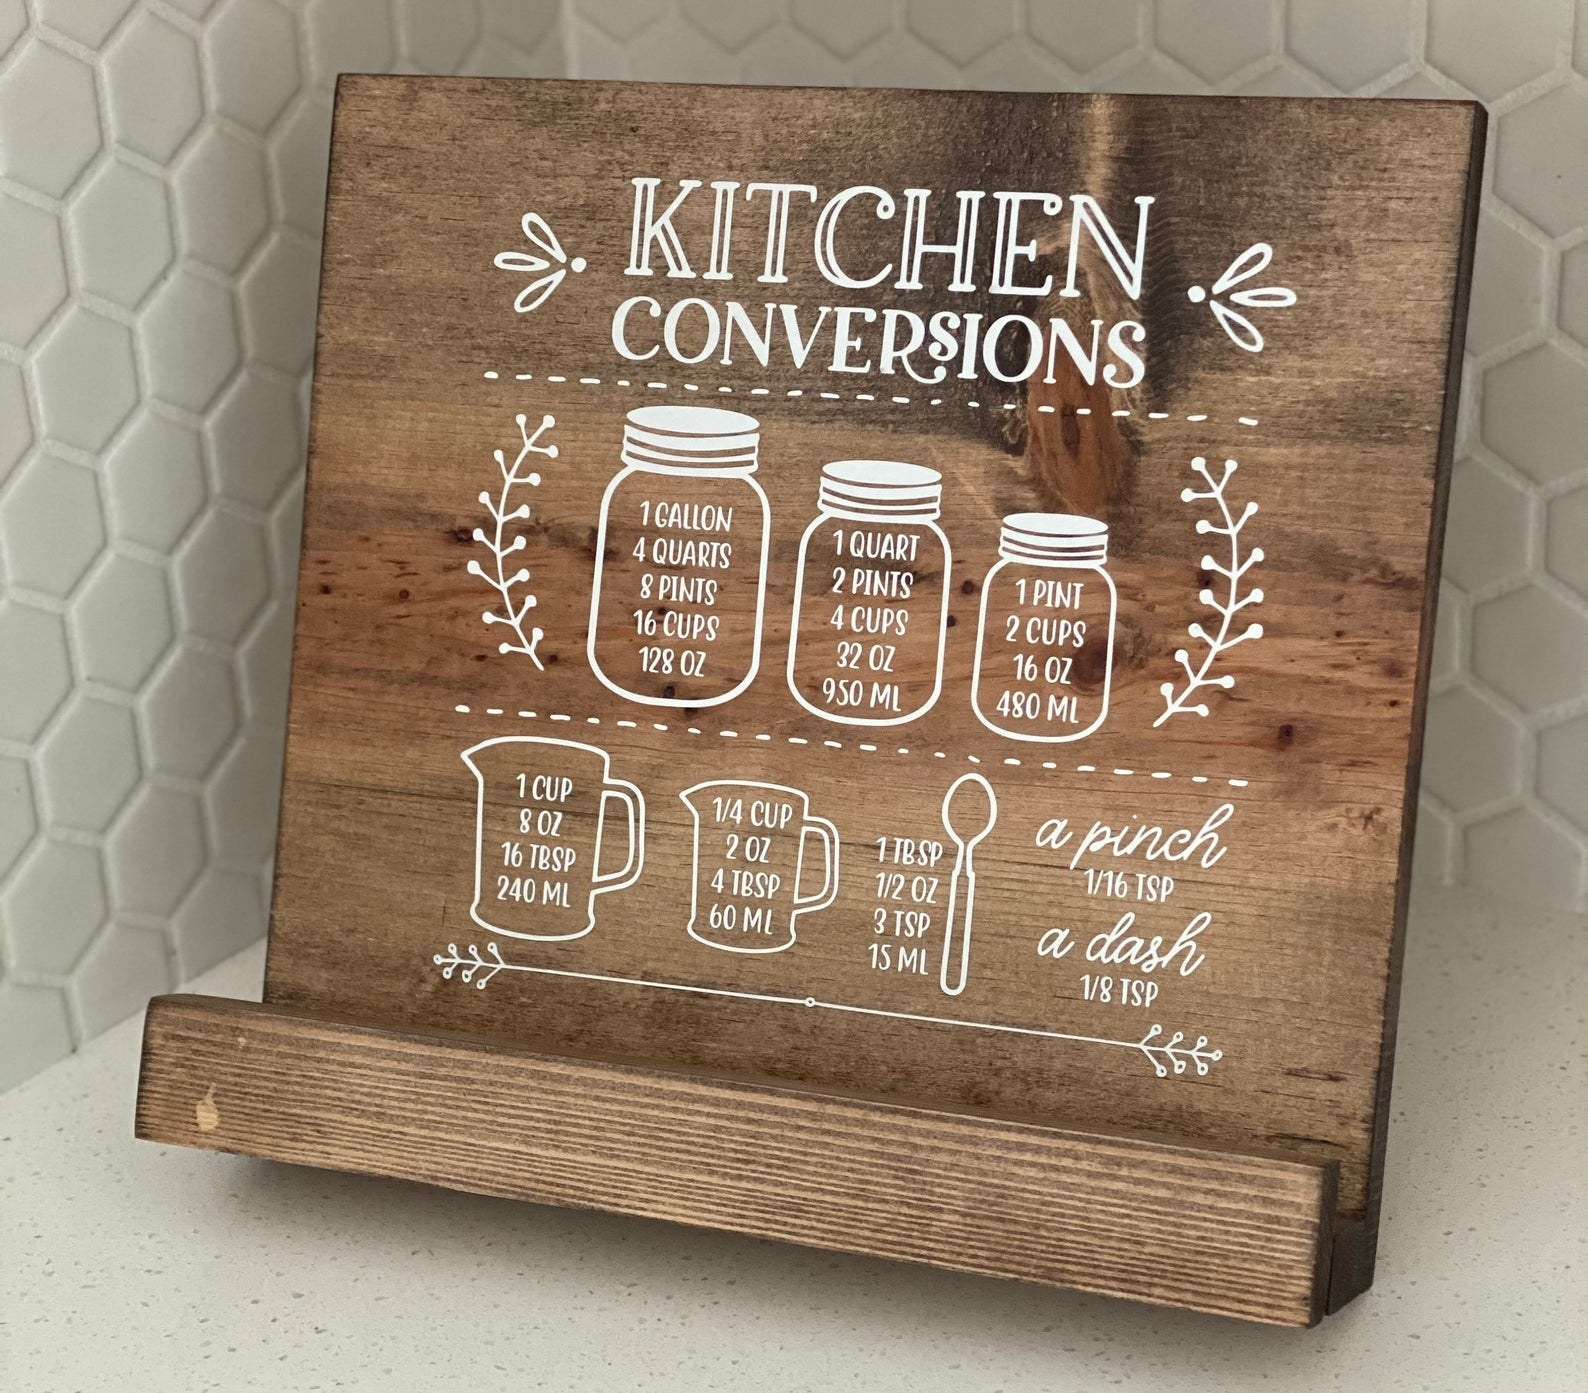 a dark wooden cookbook holder with a white hand-painted kitchen conversions design